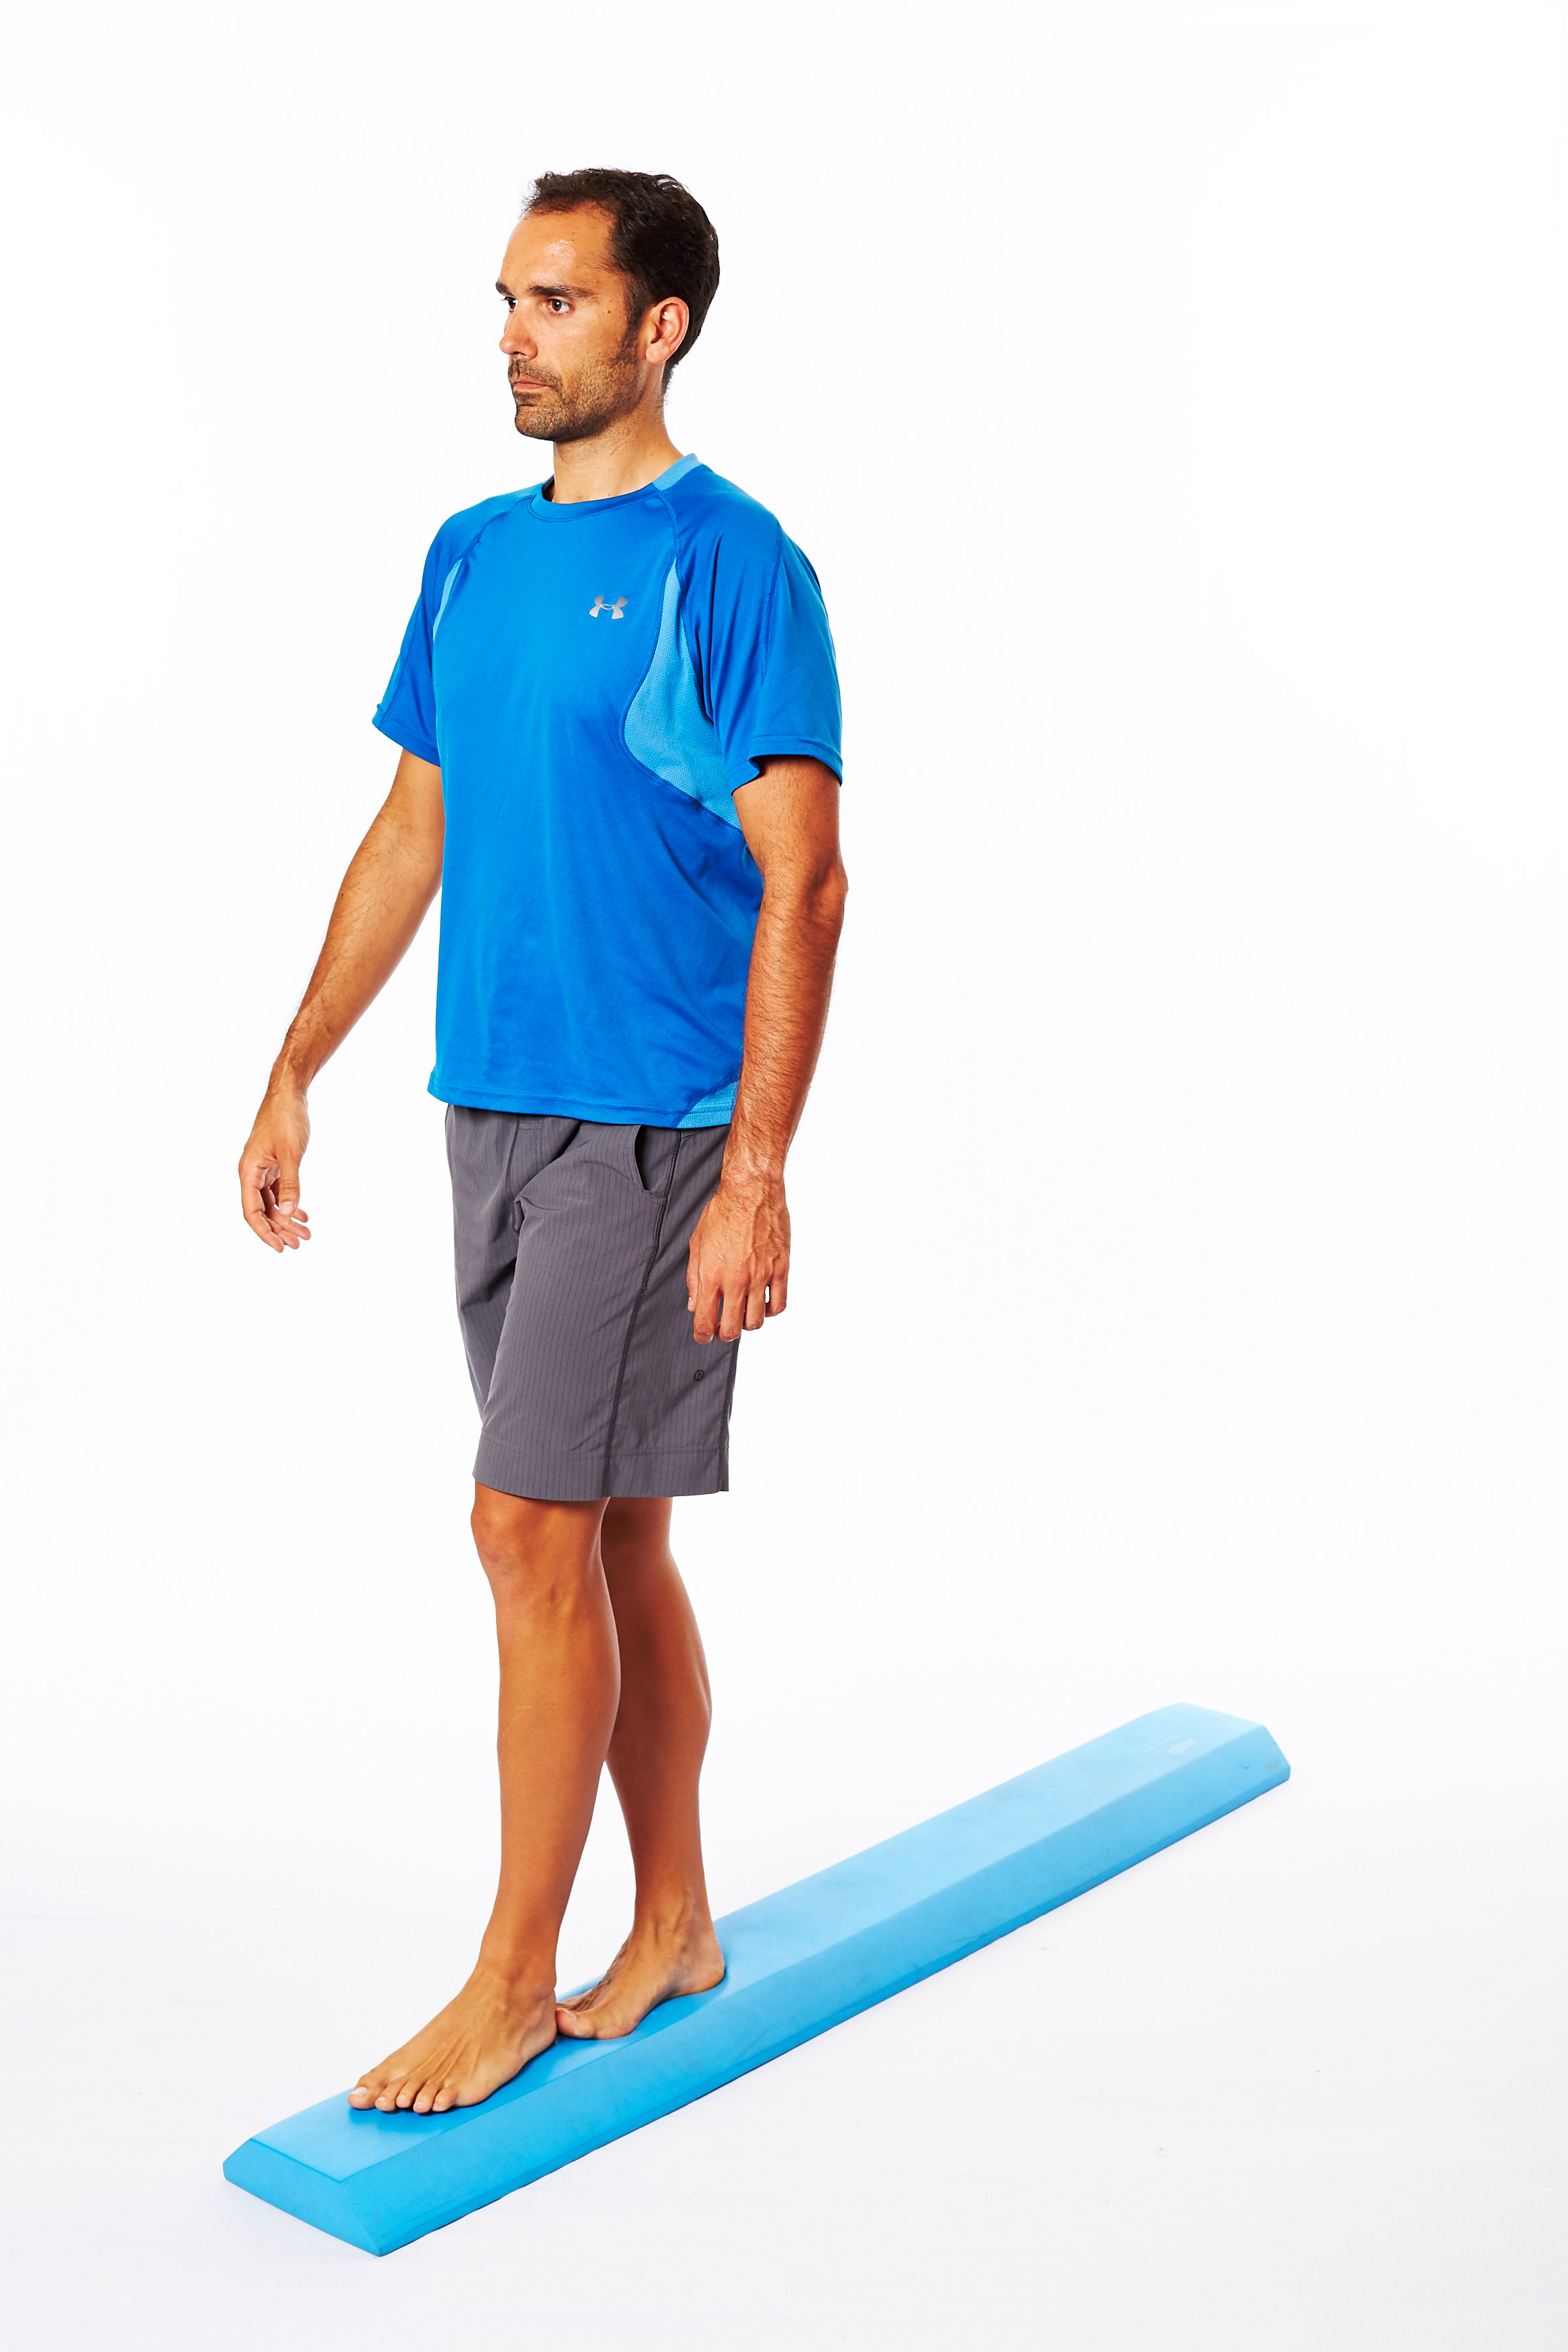 Walking on a soft surface for balance and falls prevention